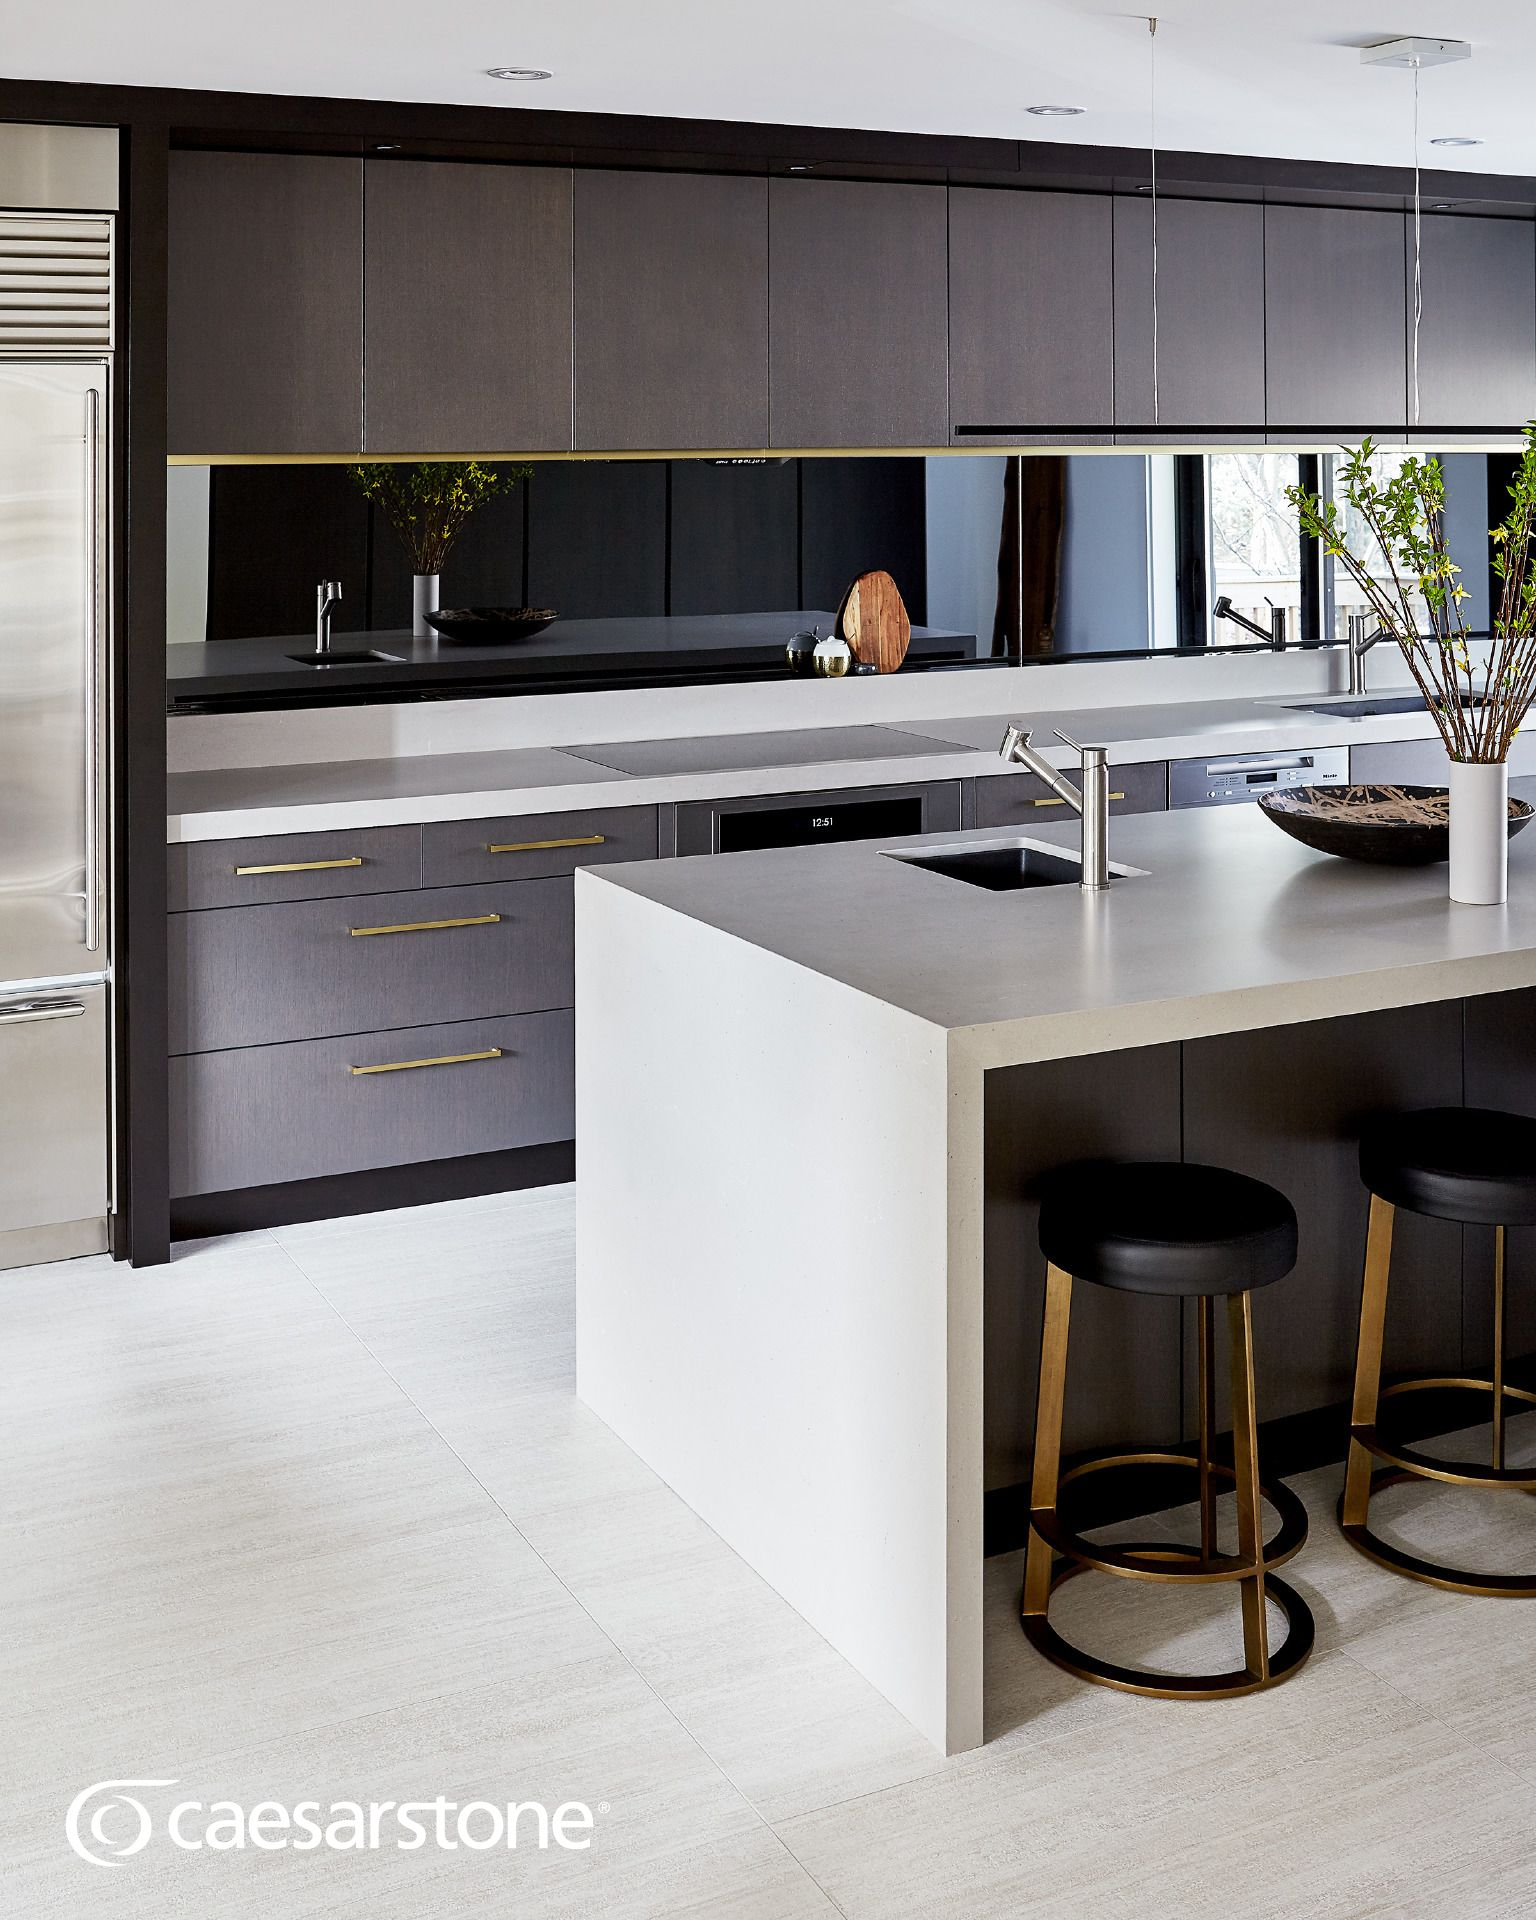 Introducing The New Metropolitan Collection From Caesarstone